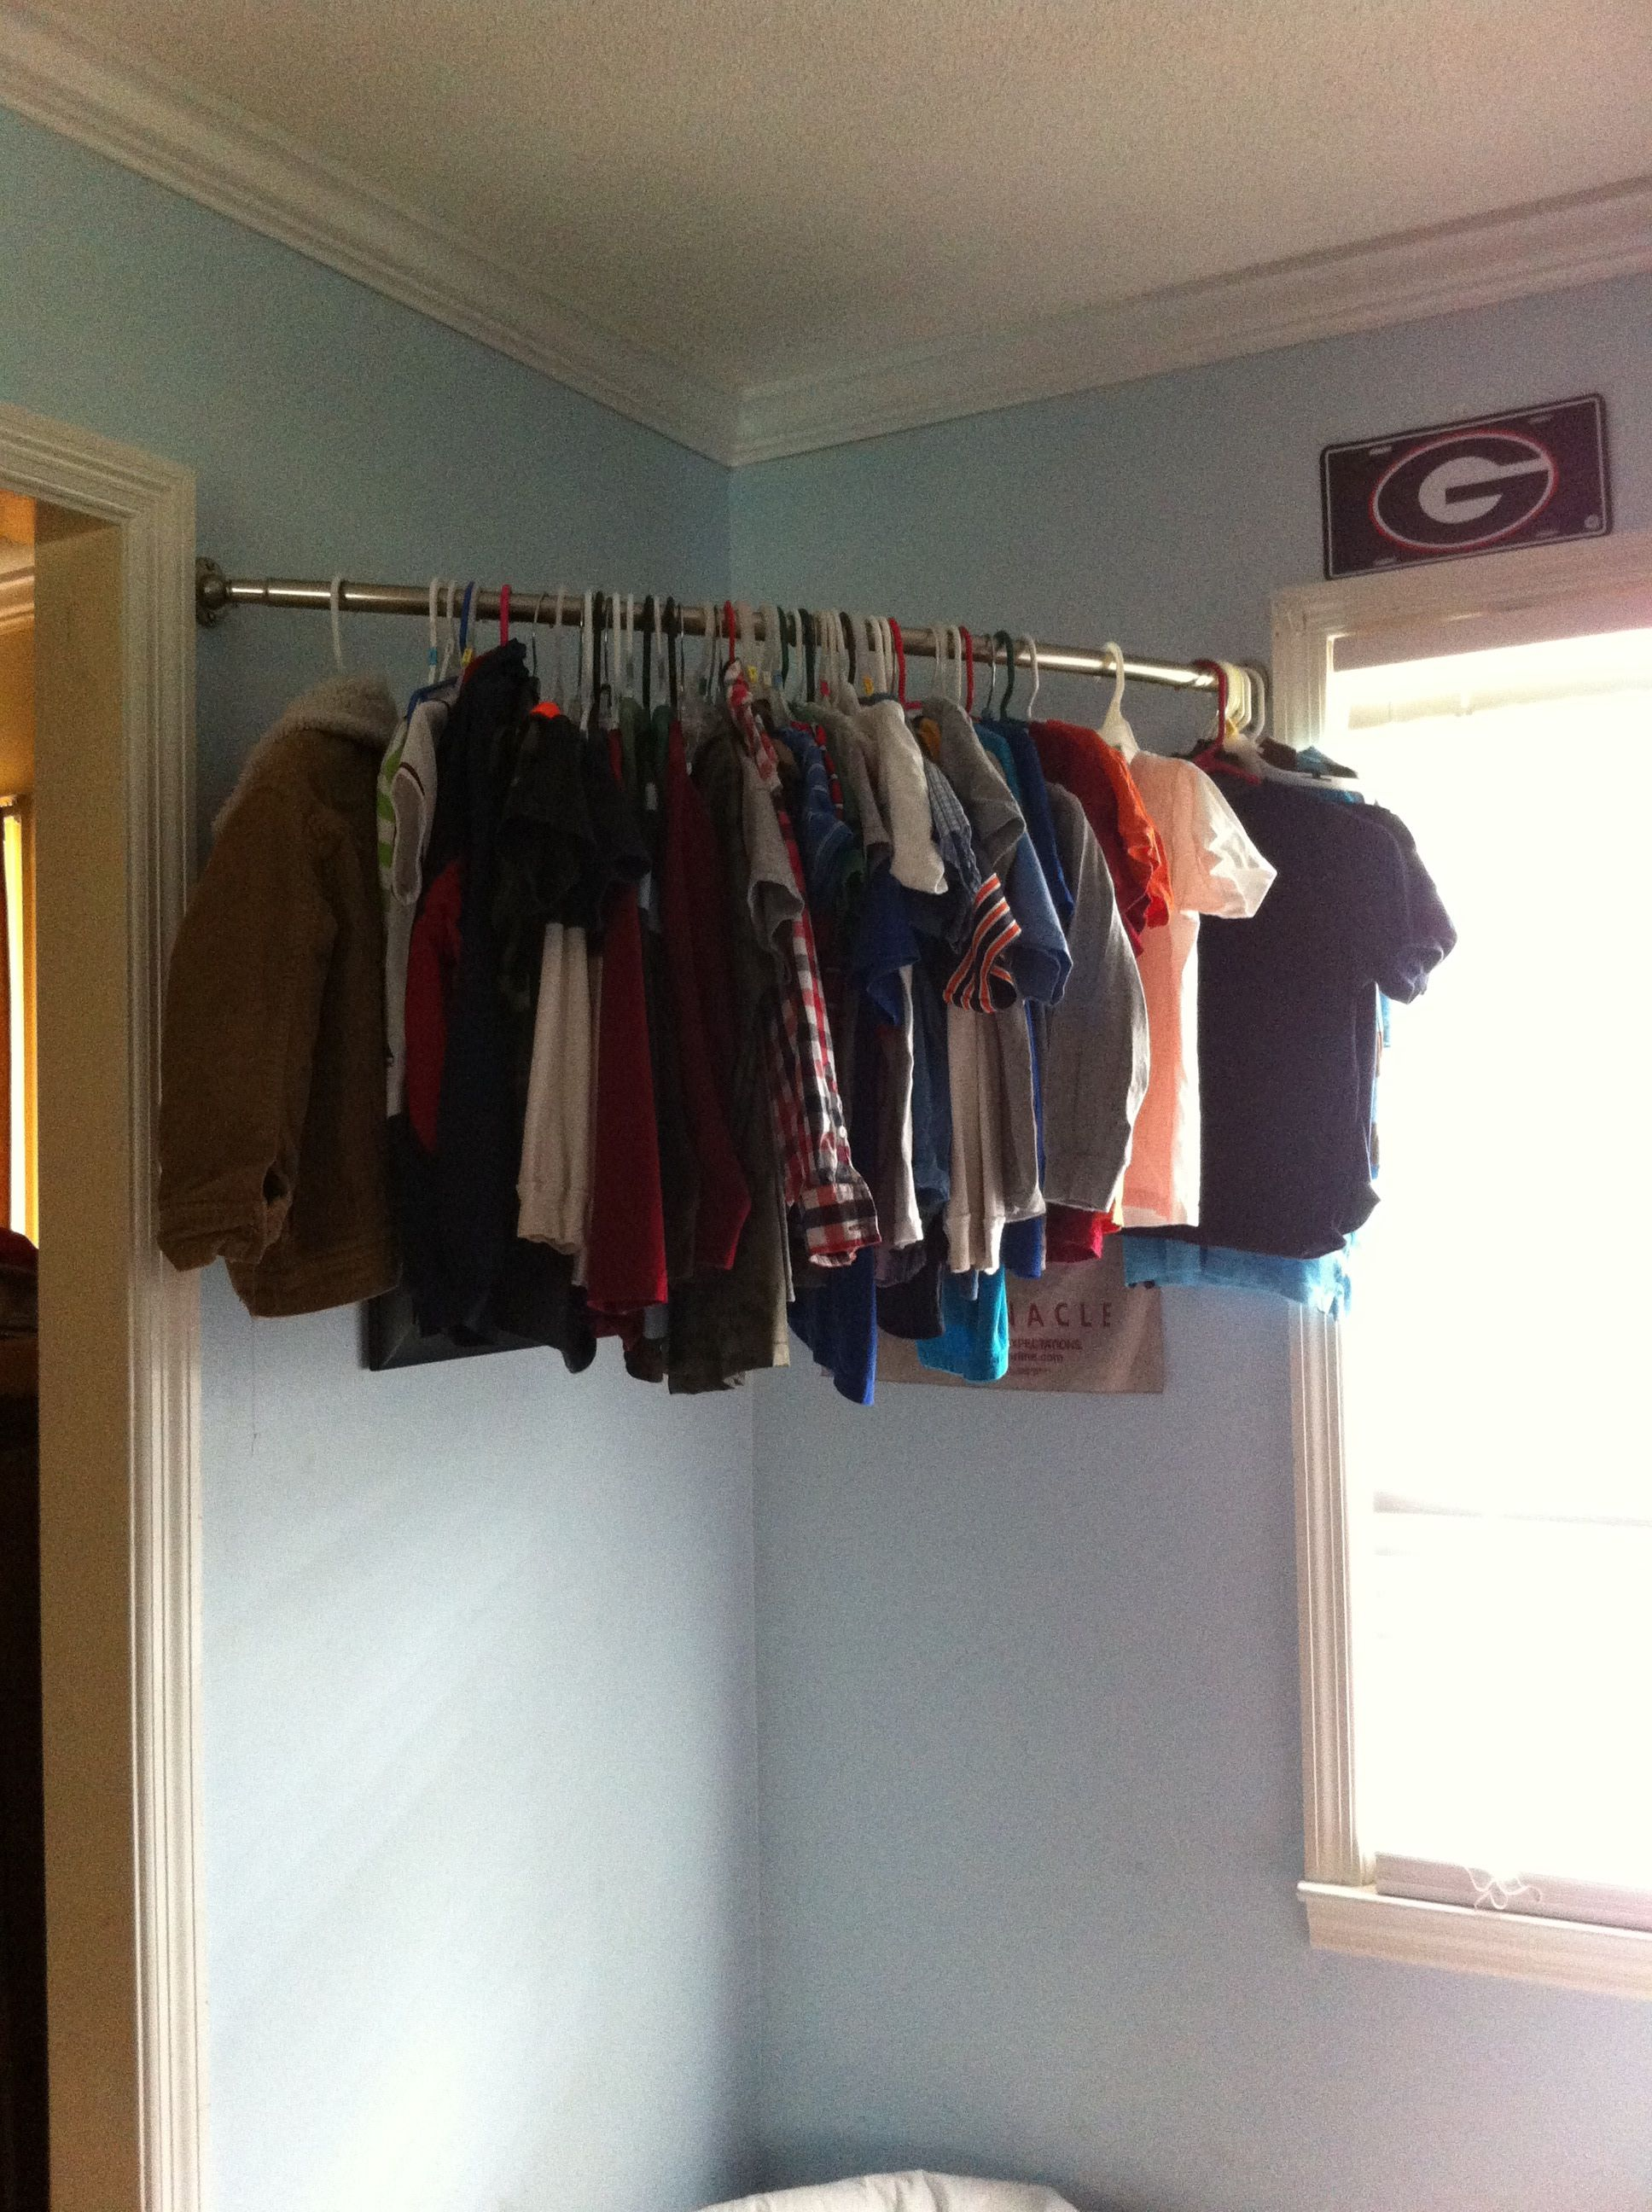 Curved Closet Rod Simple No Closet I Used A Curved Shower Rod For My Son's Clothes Inspiration